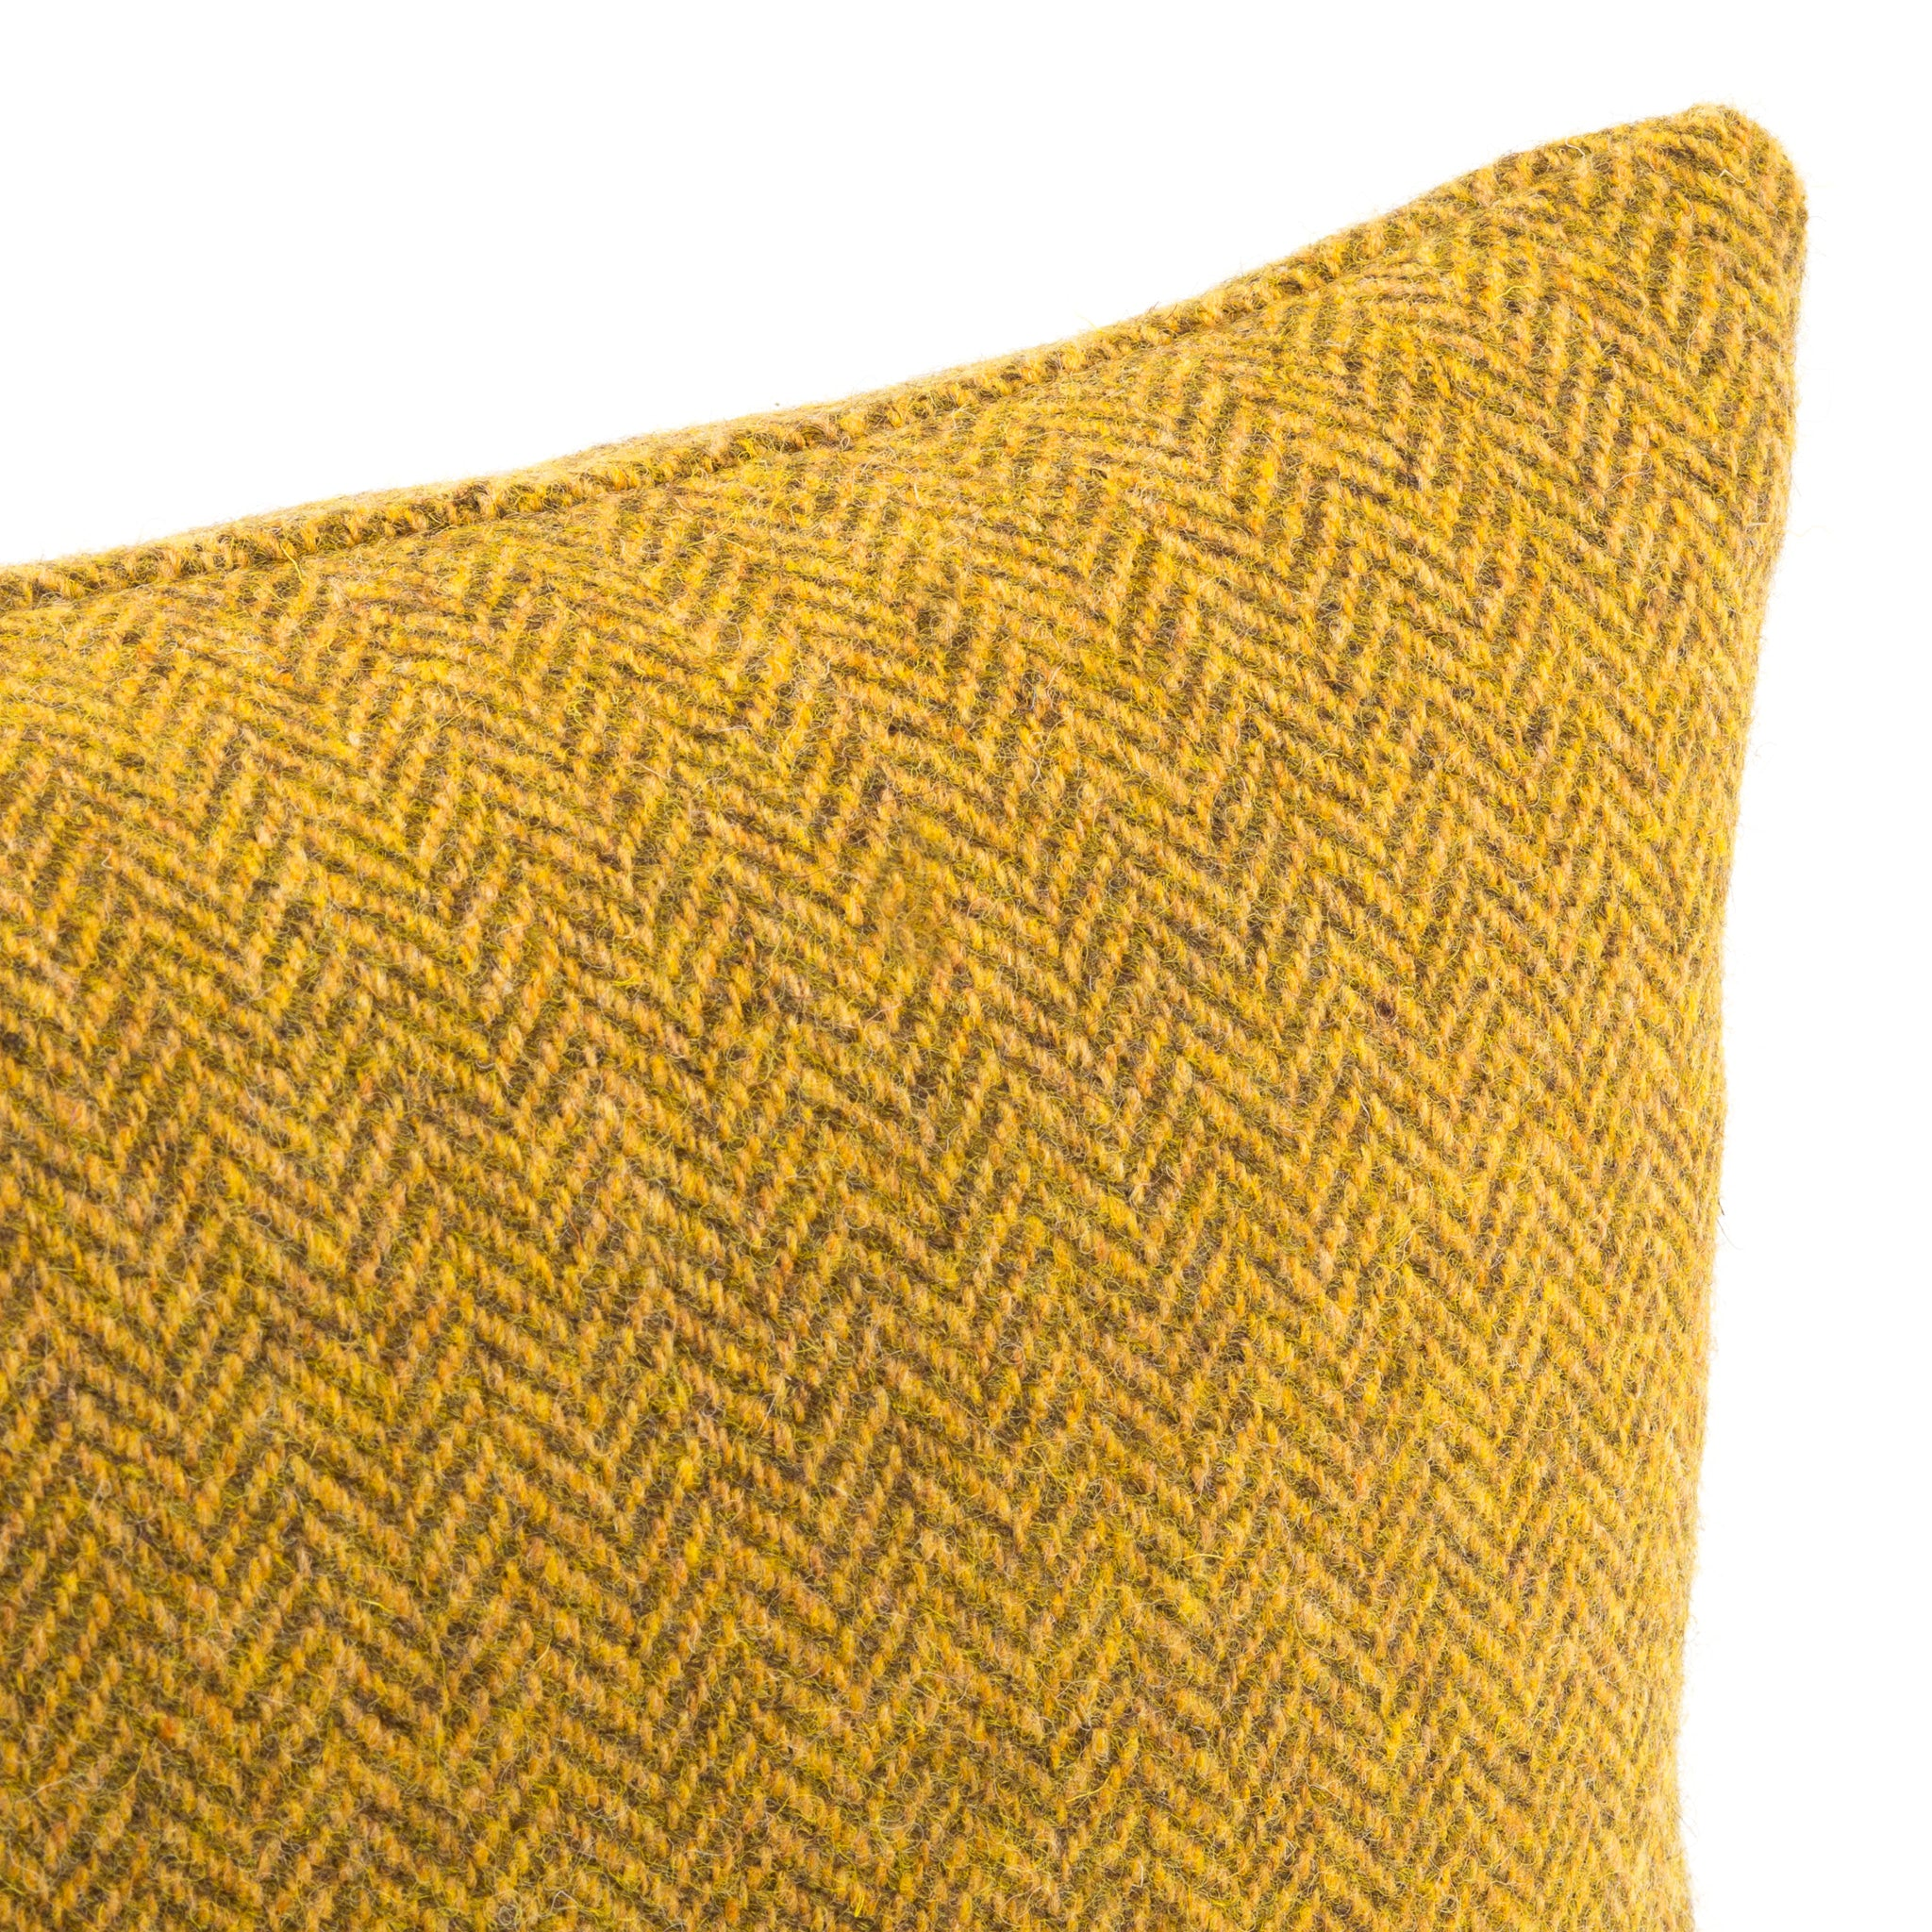 Harris Tweed/Pure Wool/Yellow/Mustard/Gorse/Herringbone/Detail/Outer Hebrides/Scatter/Cushion/